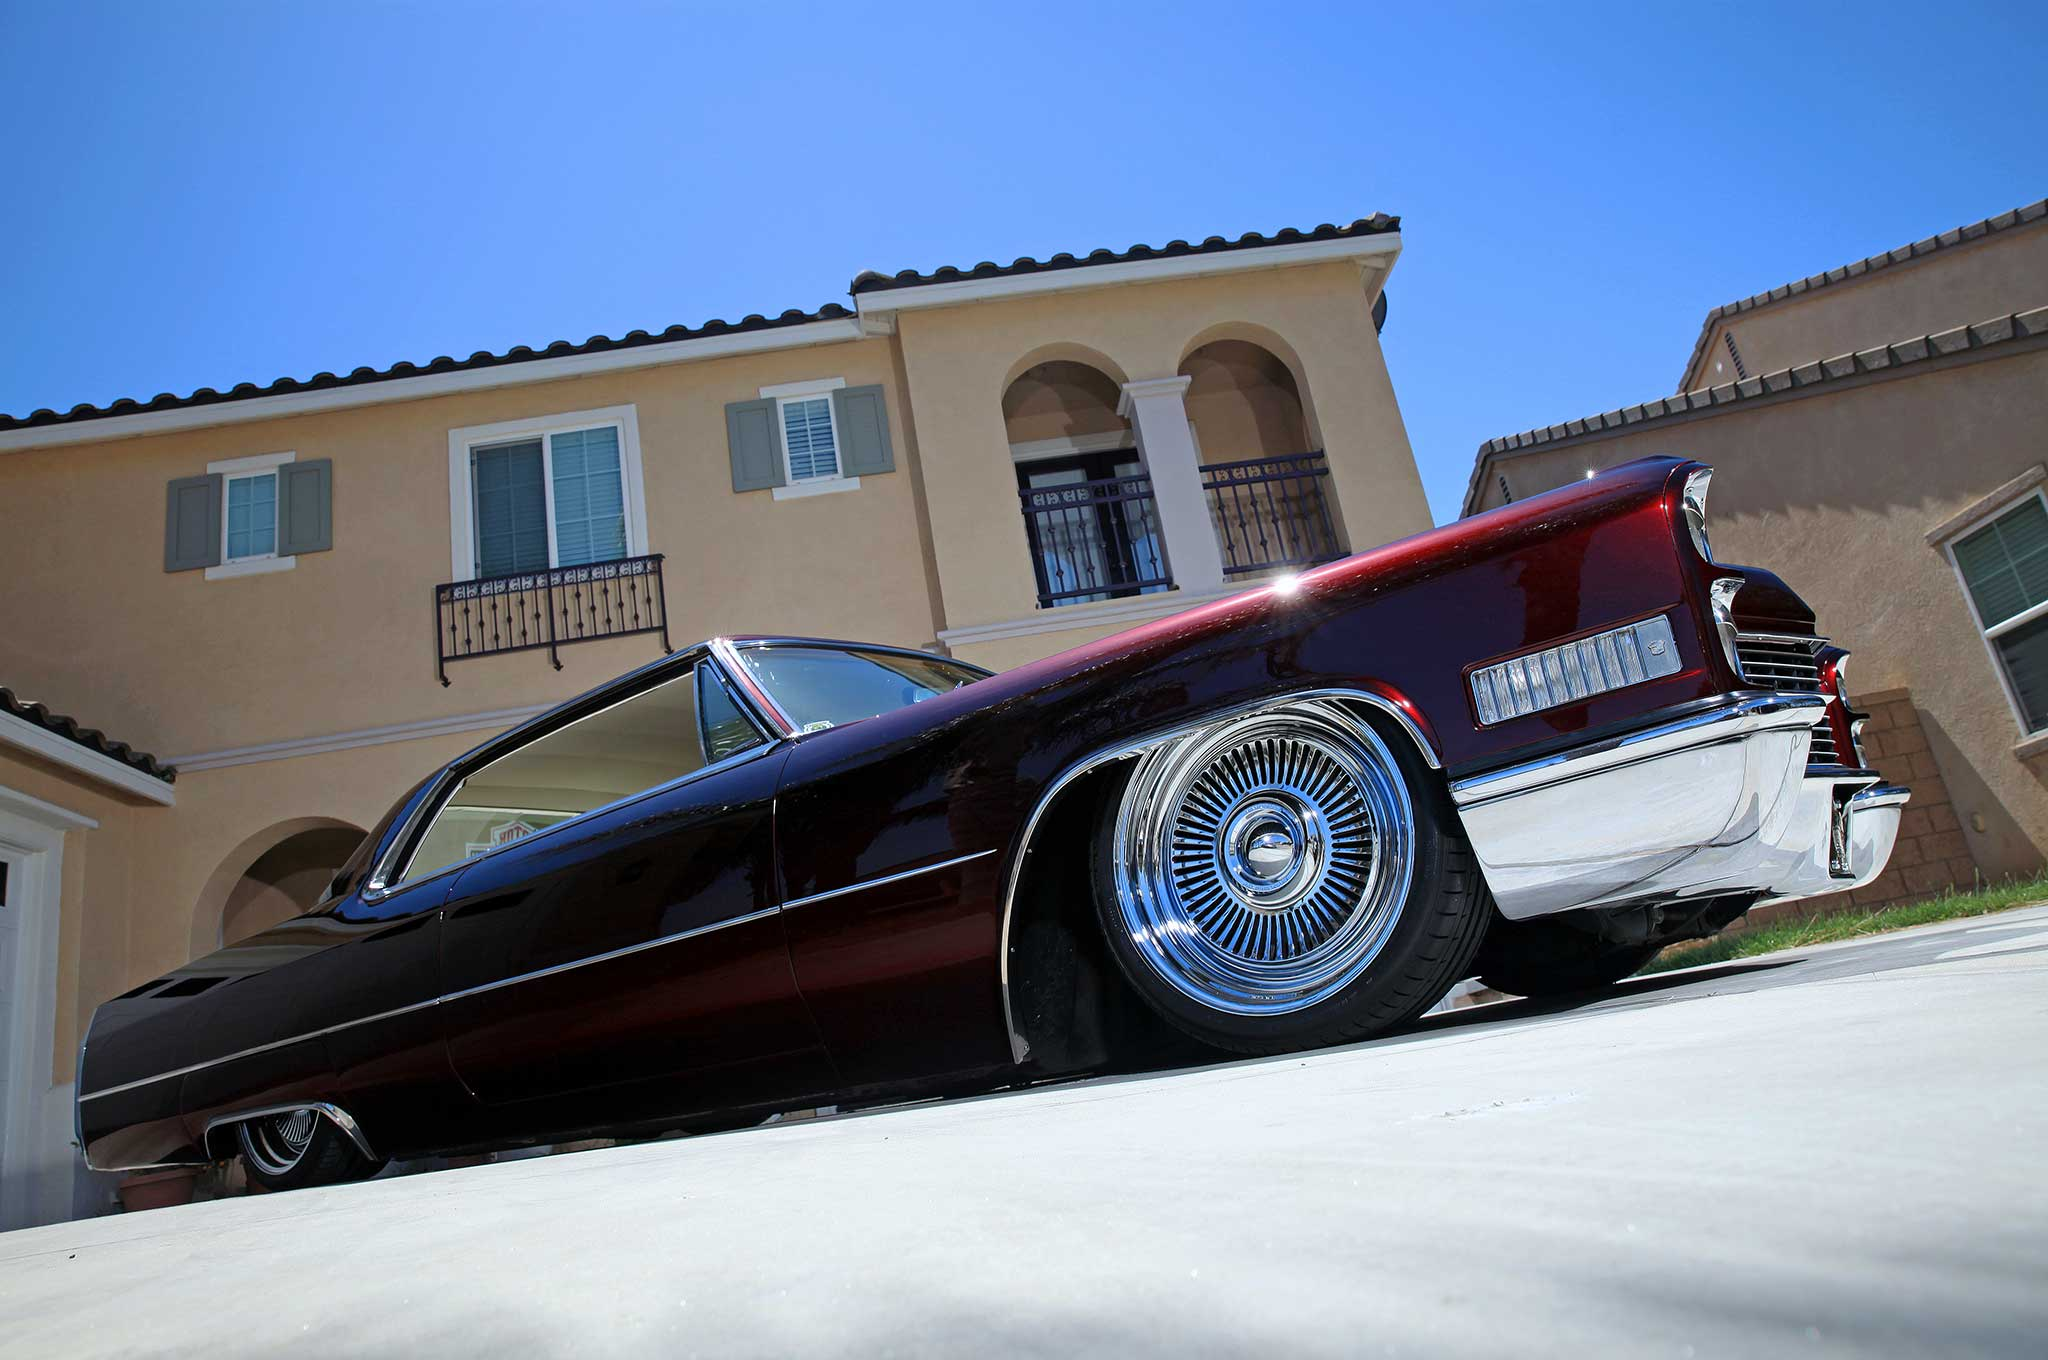 Riding a Clic Cadillac Coupe to Spend Time with His Kids